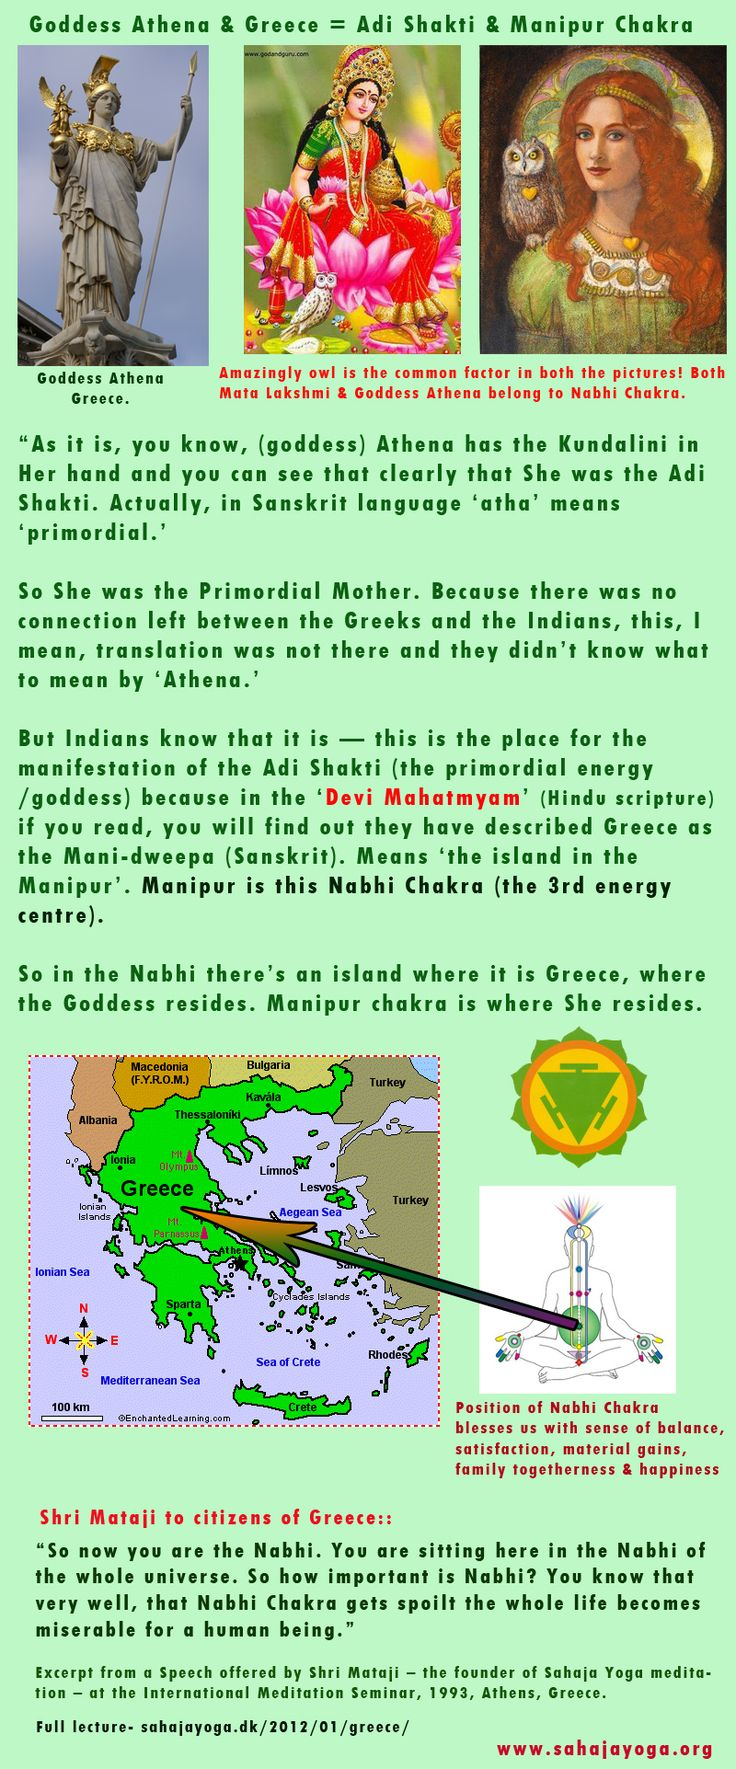 Greece represents the Nabhi Chakra (Manipura Chakra) or the 3rd/ Solar energy center in the world subtle map.